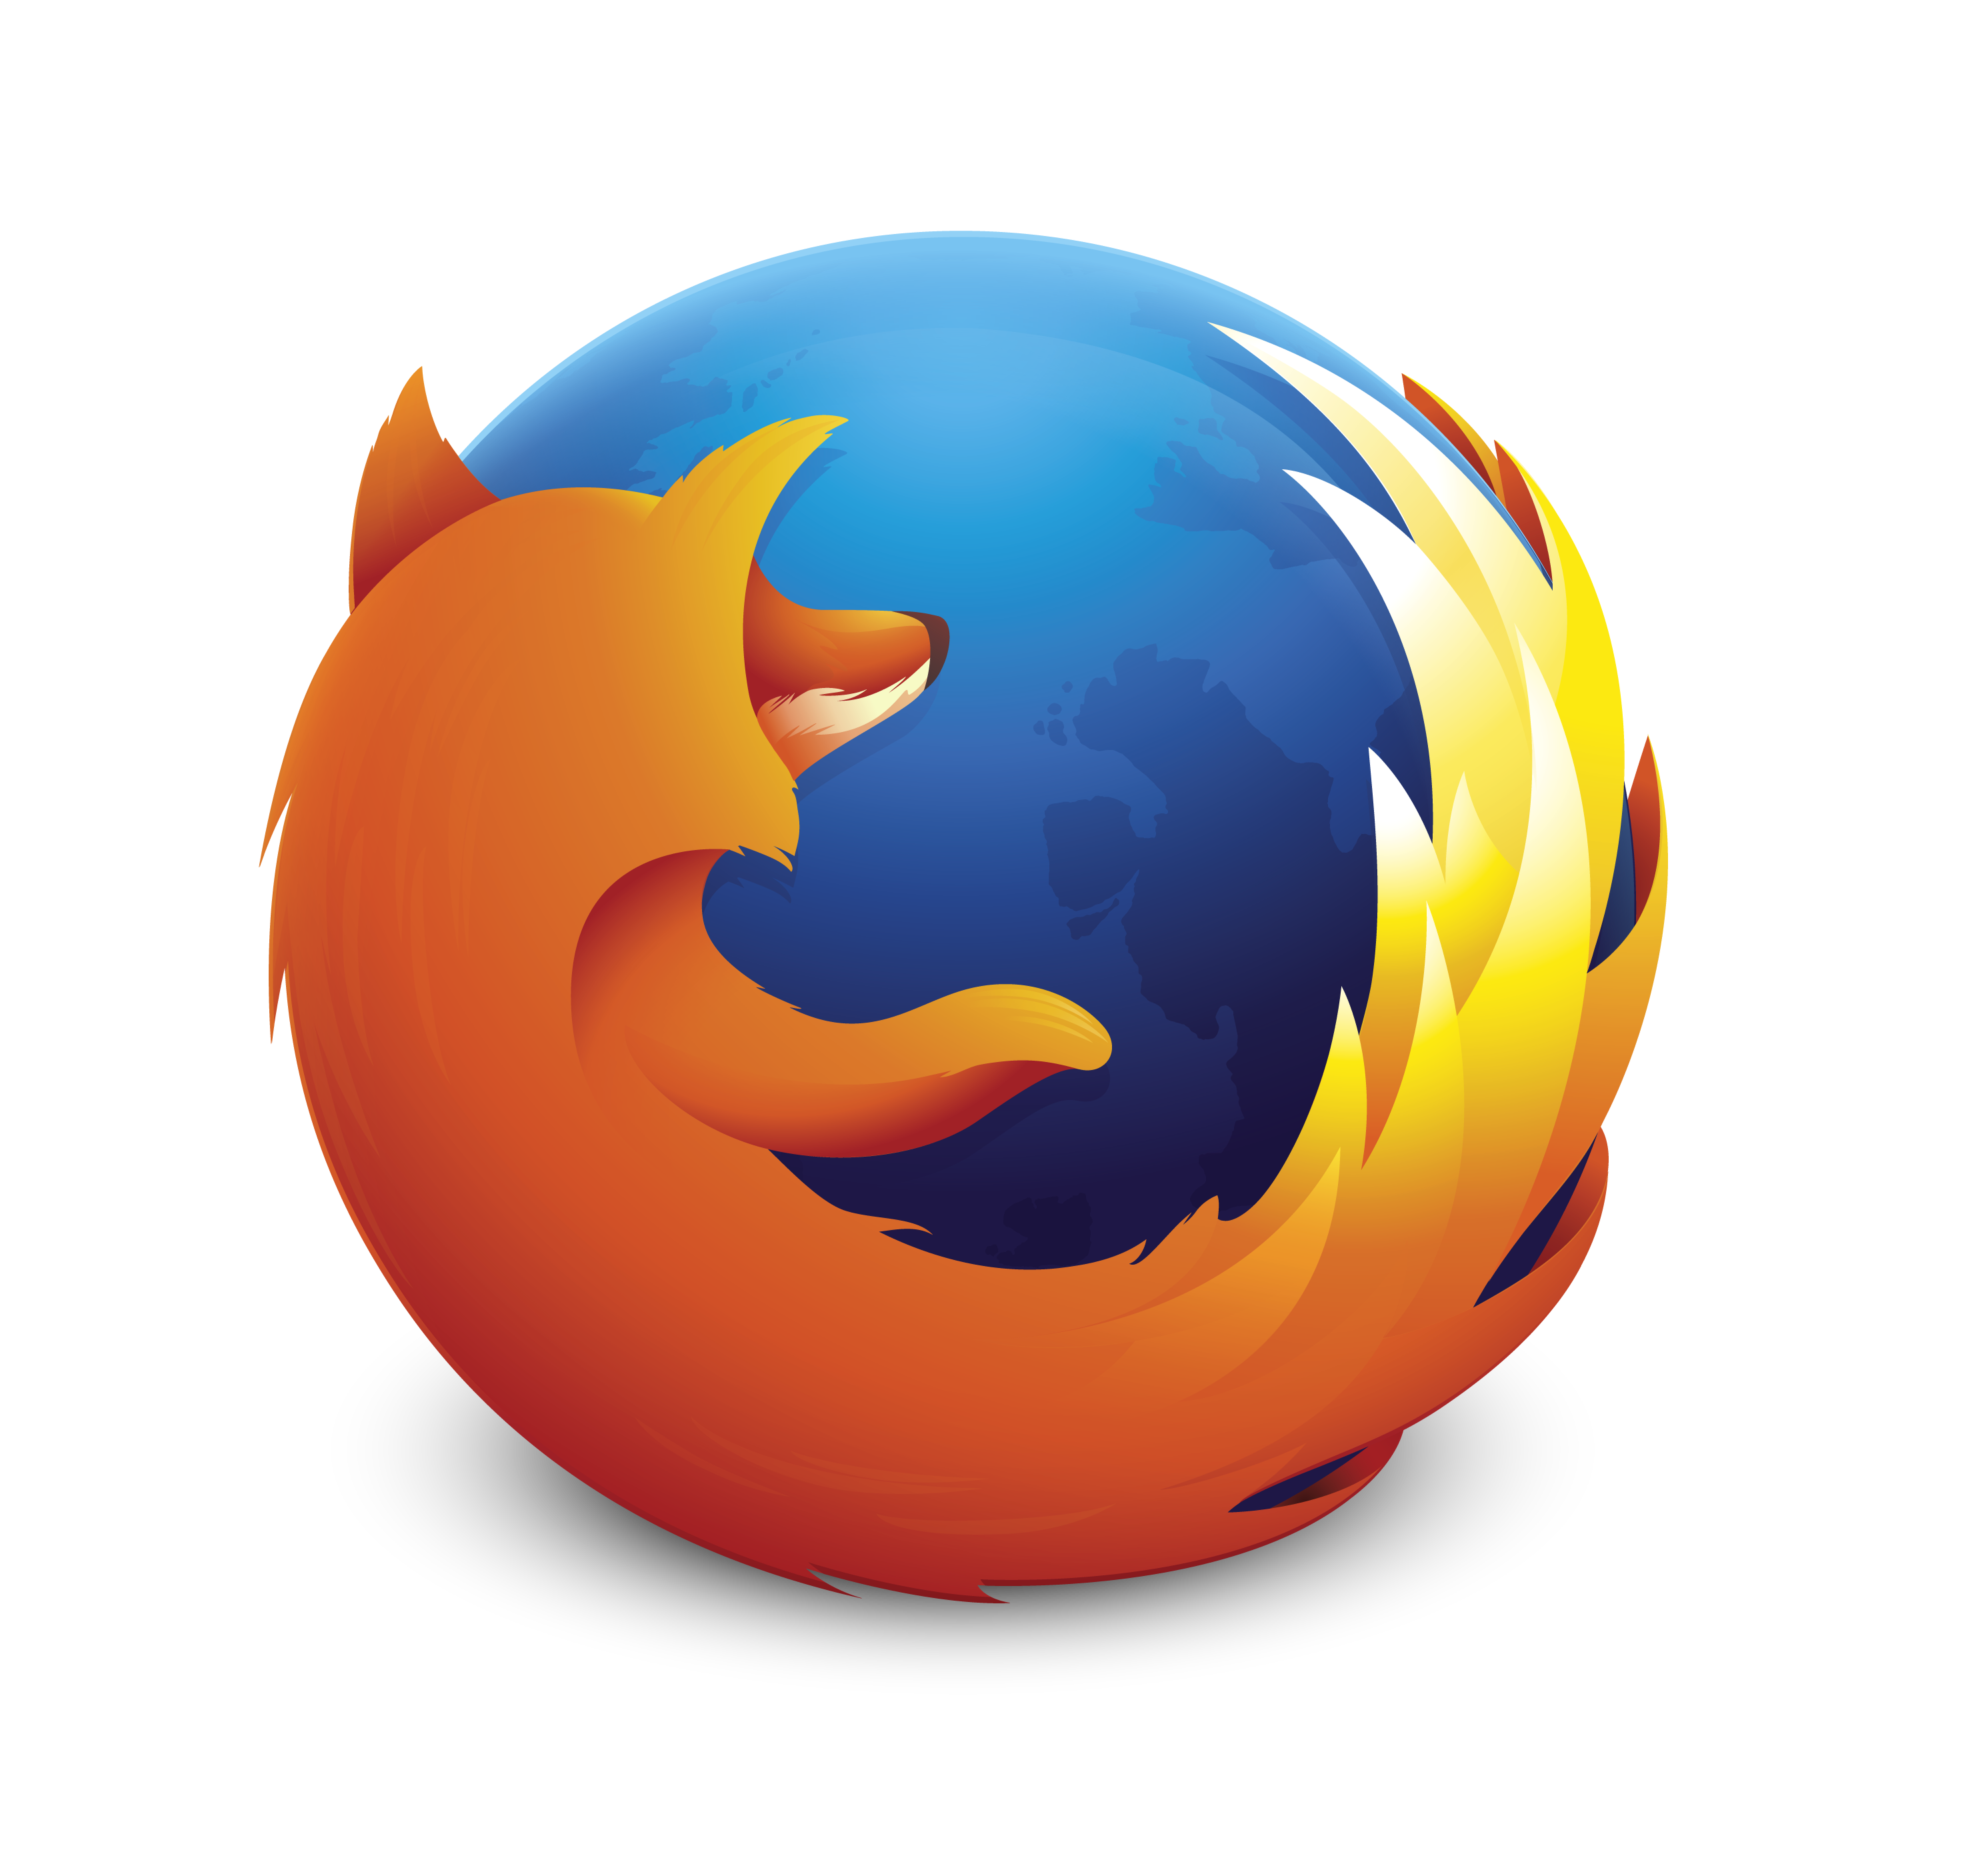 Firefox PNG images free download.